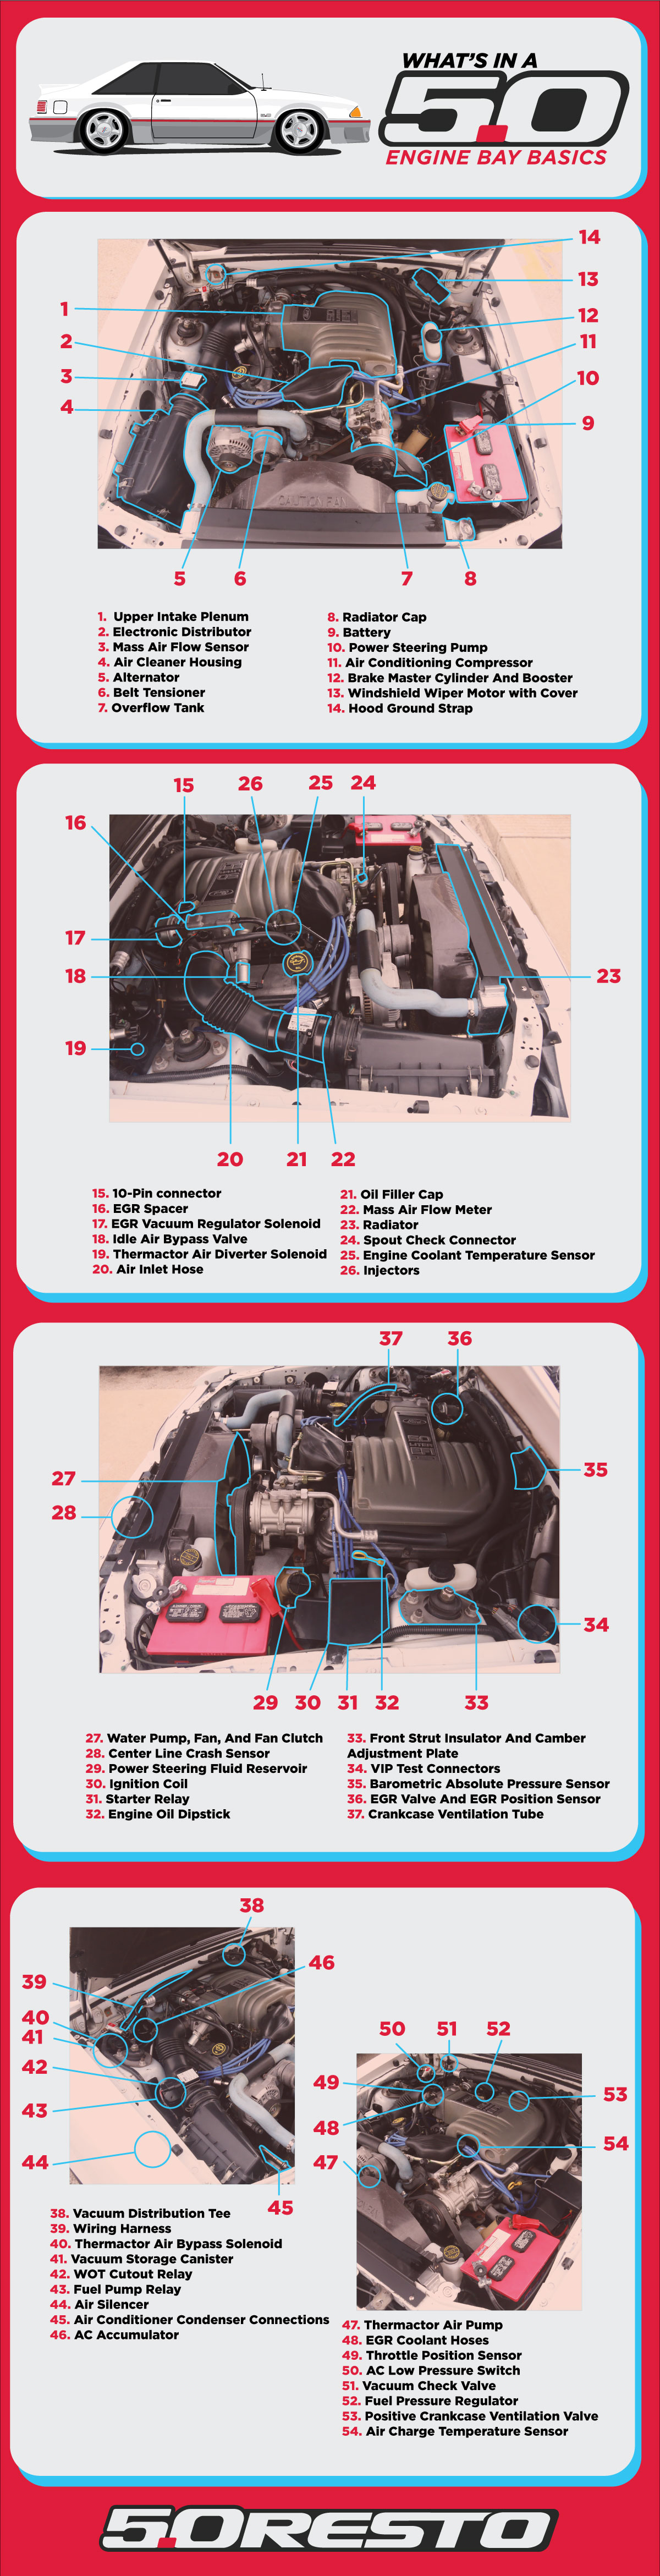 Fox Body Engine Bay Diagram 1986 1993 Lmr Com